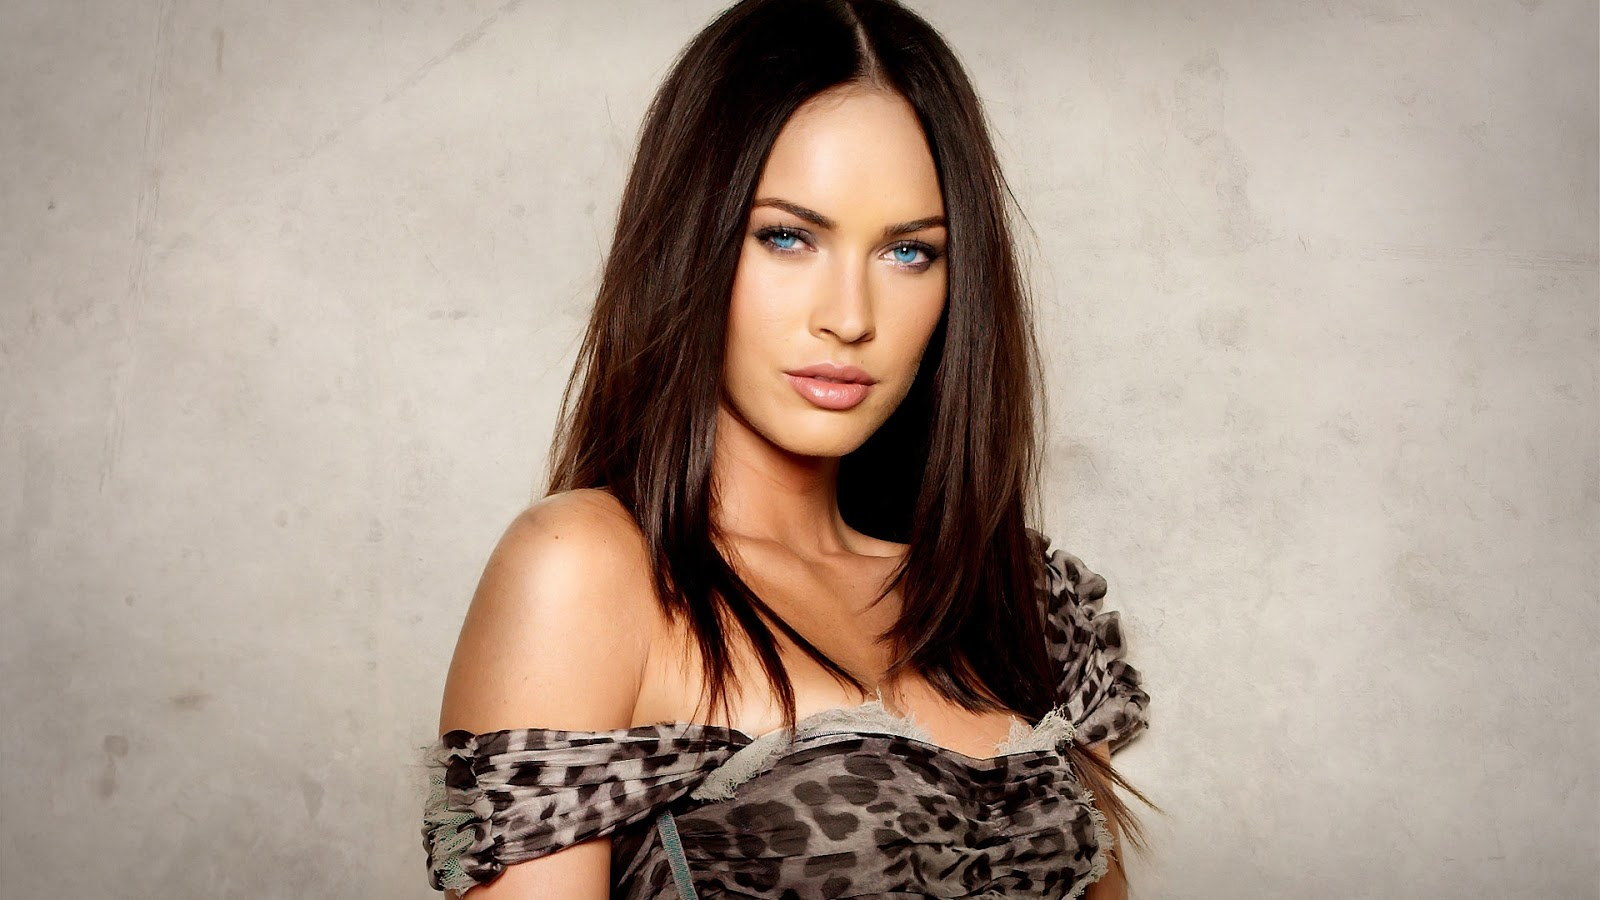 top 80 megan fox full hd photos free download in computer,desktop